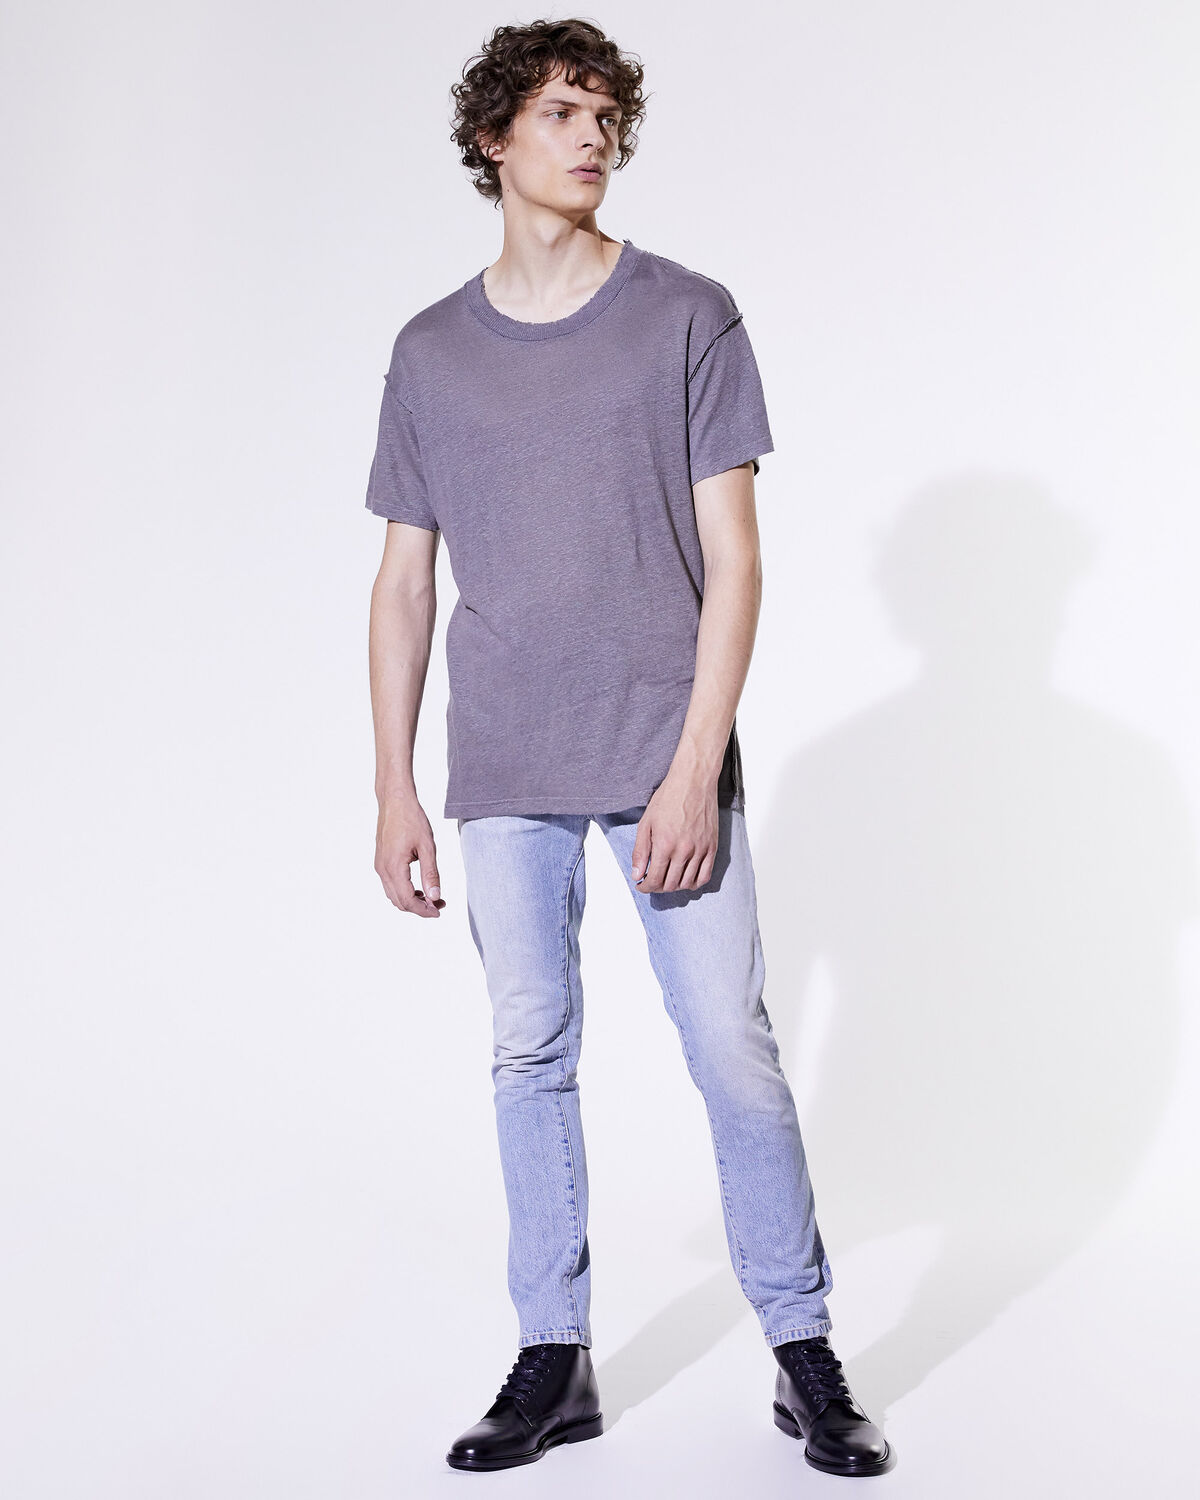 IRO - T-SHIRT JURUS DARK GREY